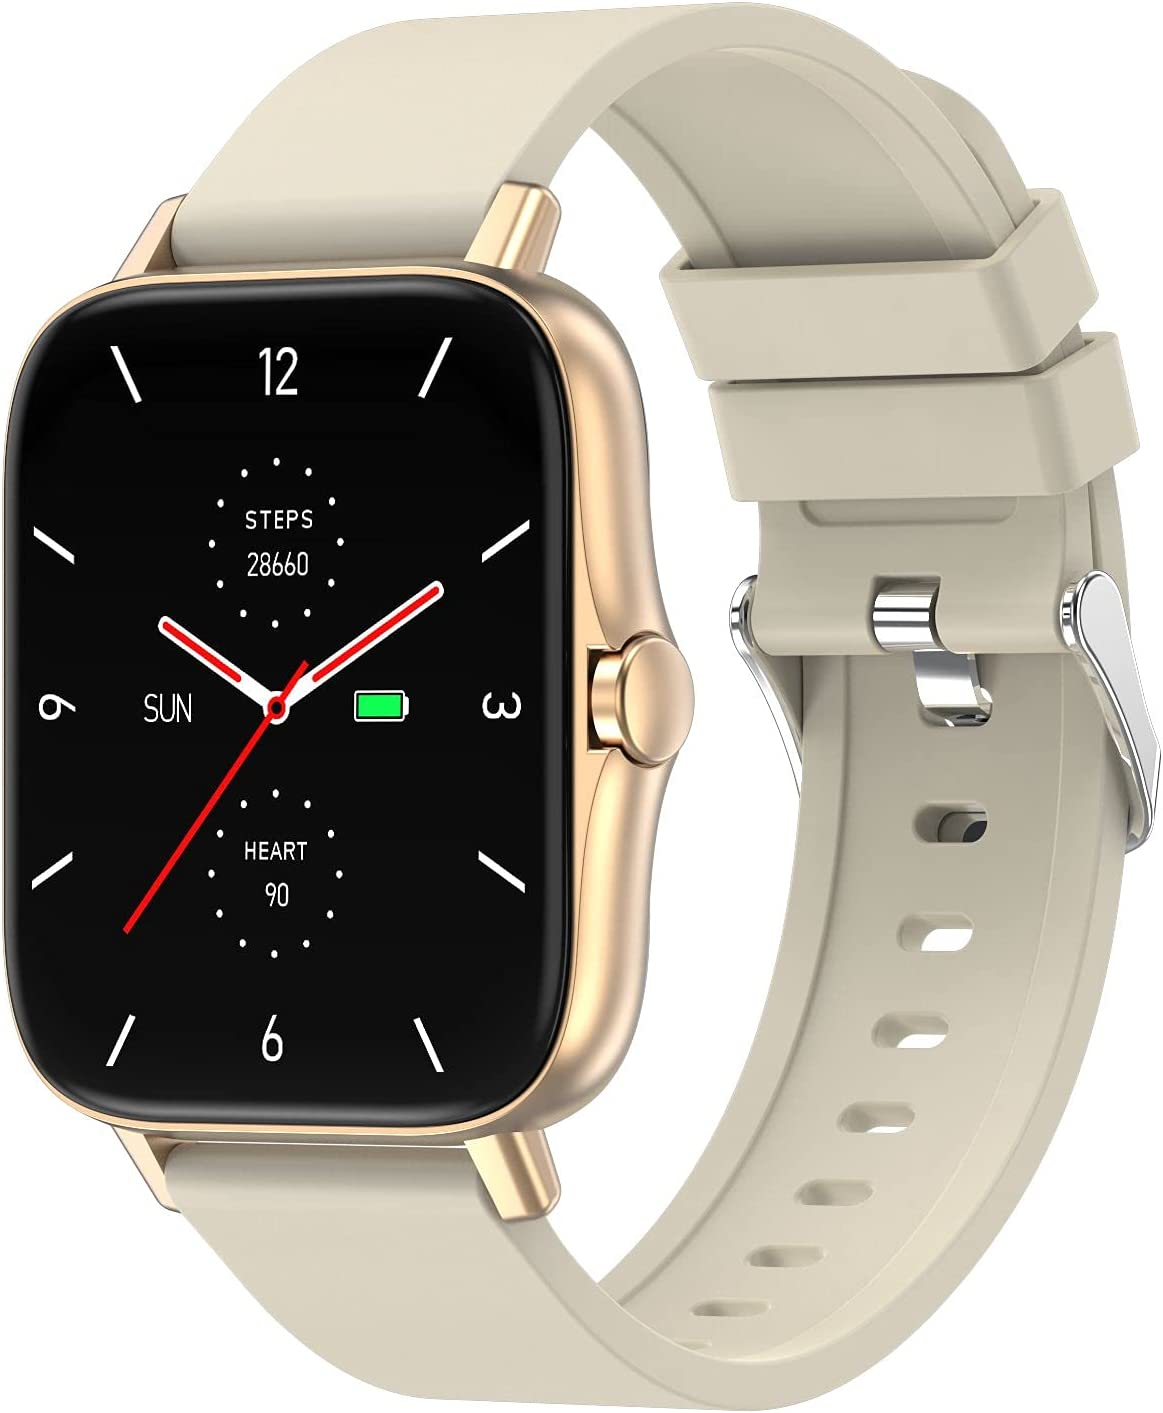 TENNOVO T42 Smart Watch with New products world's highest quality popular Bluetooth Call Fashion Blood Pre Rate Heart